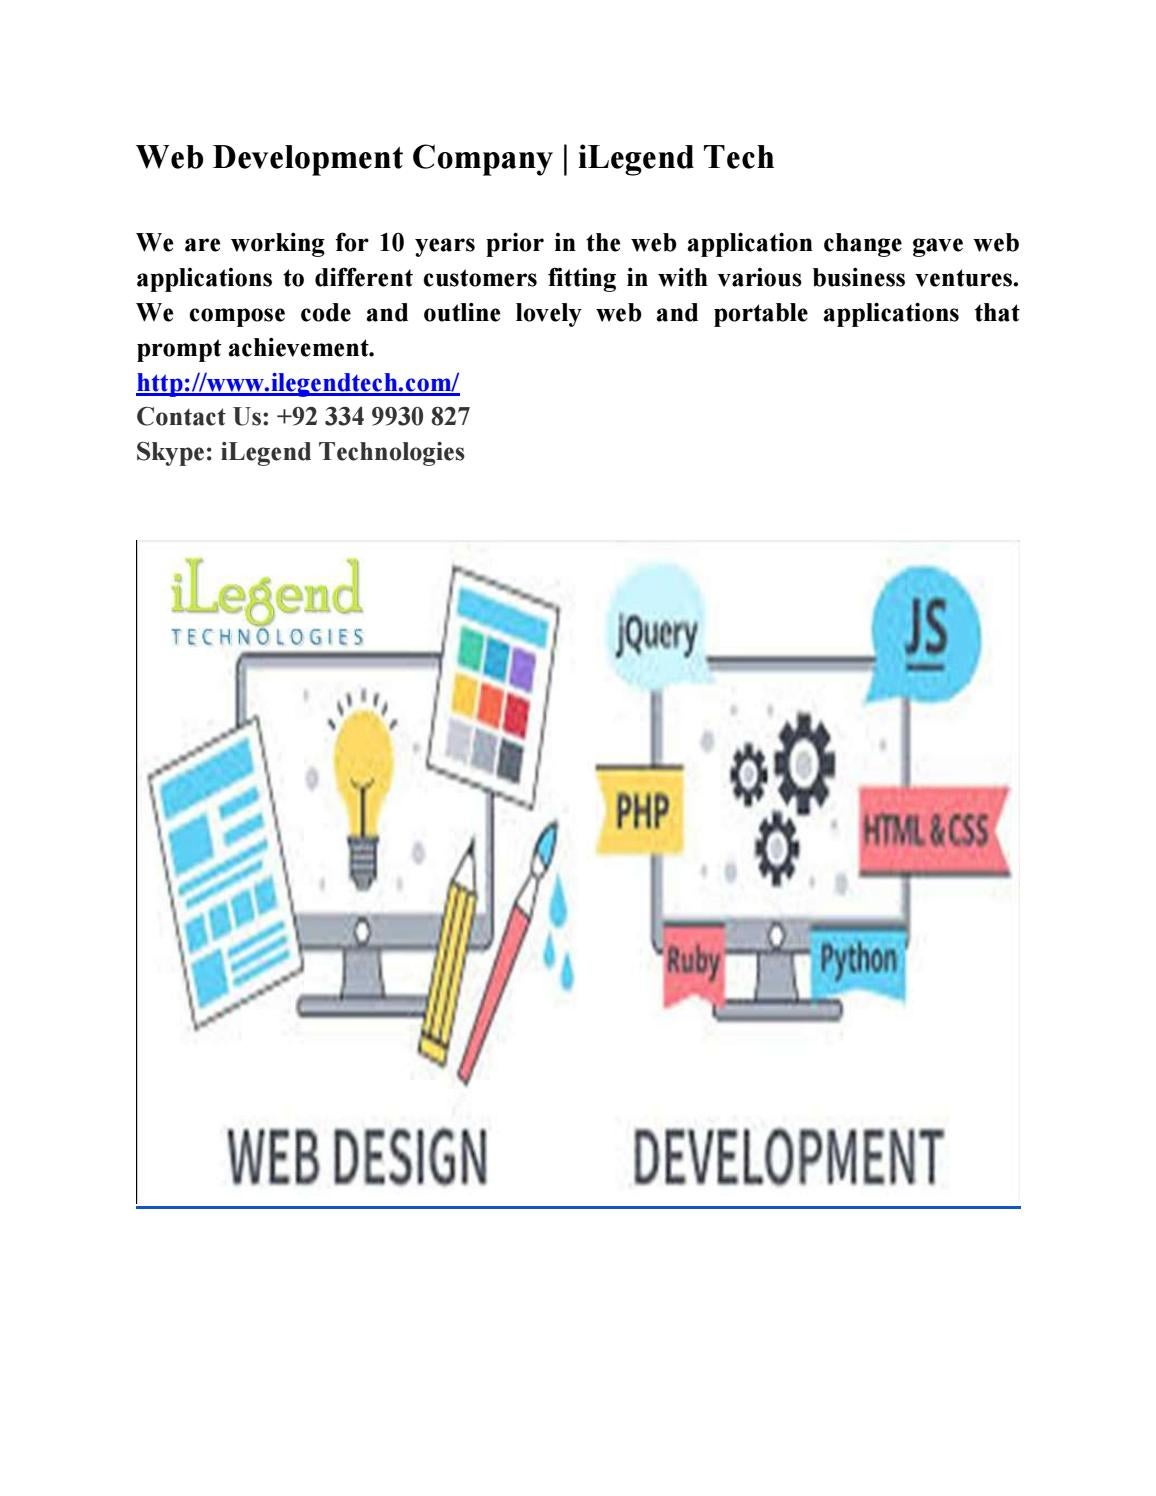 Web development company | ilegend tech by samanasajid0 - issuu